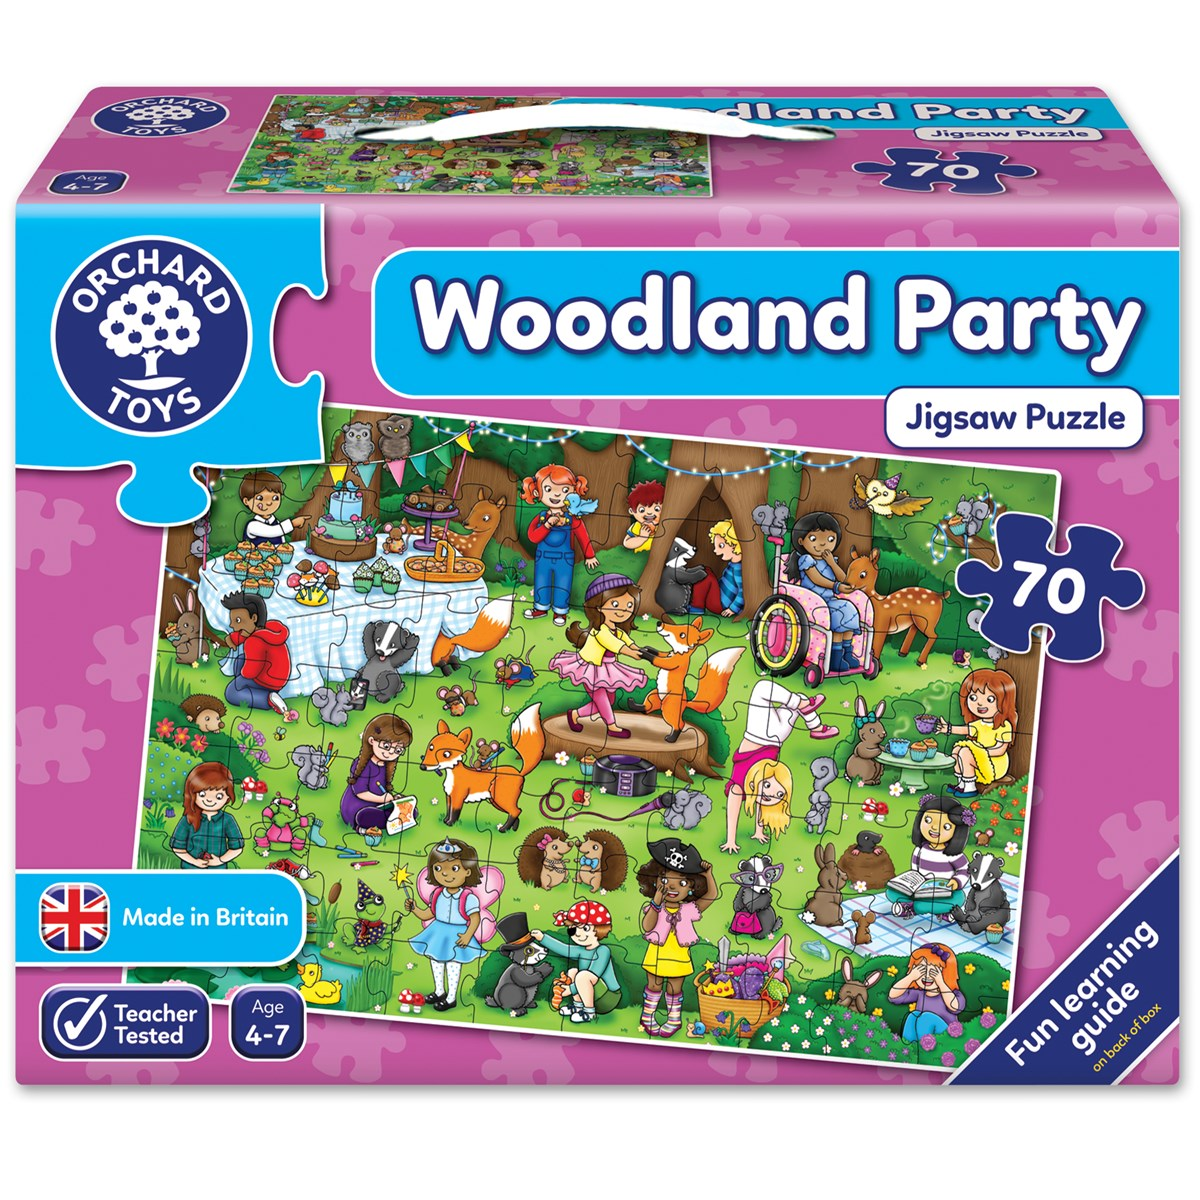 Orchard toys woodland party jigsaw puzzle nimble fingers gumiabroncs